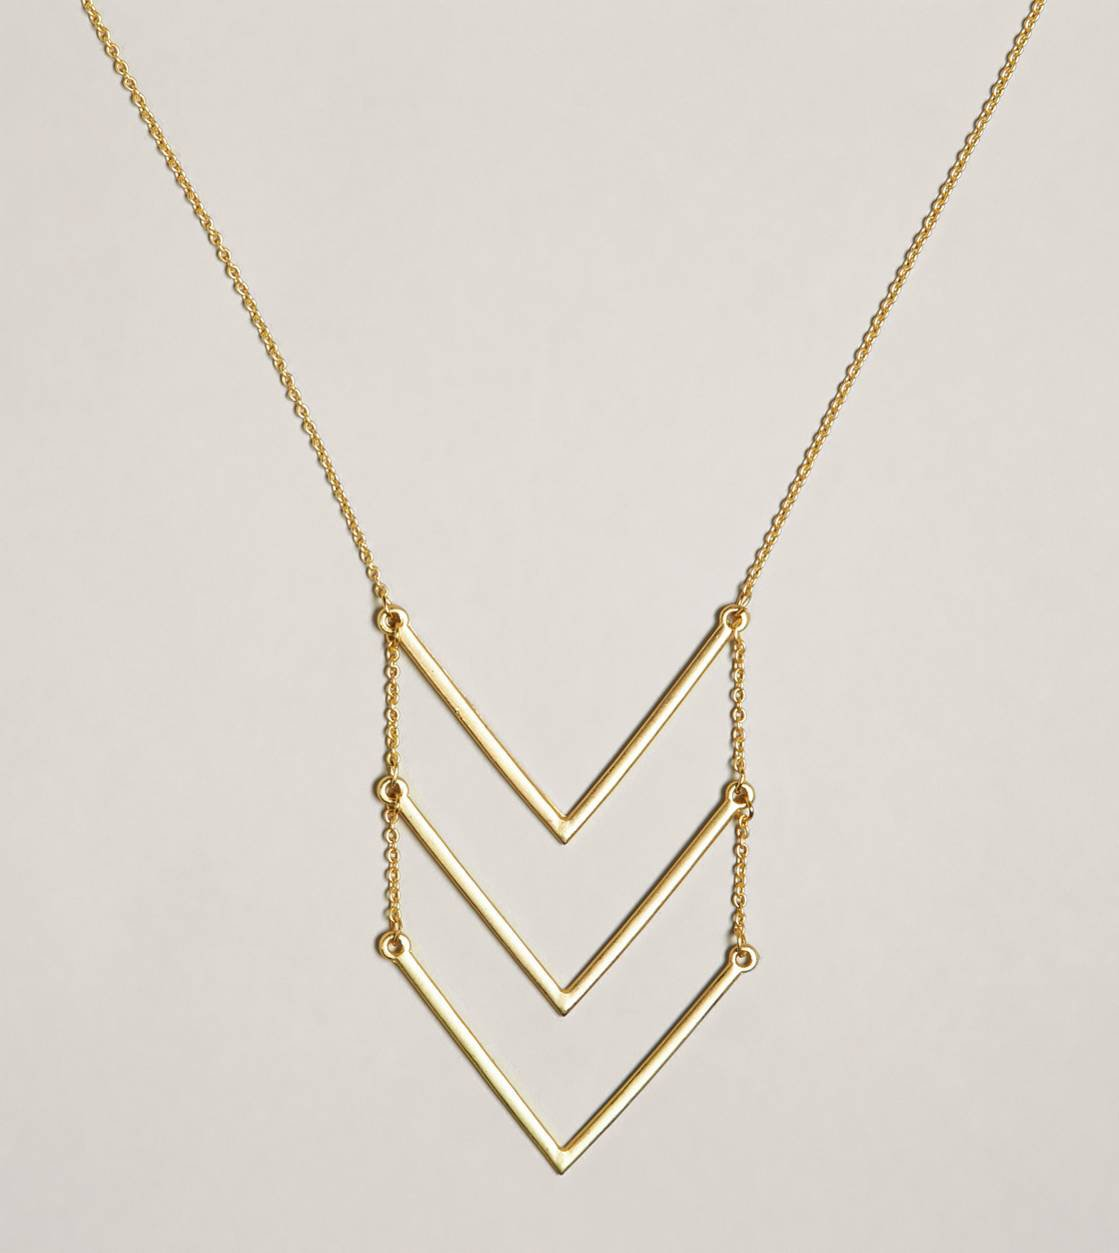 aeo v necklace american eagle from american eagle